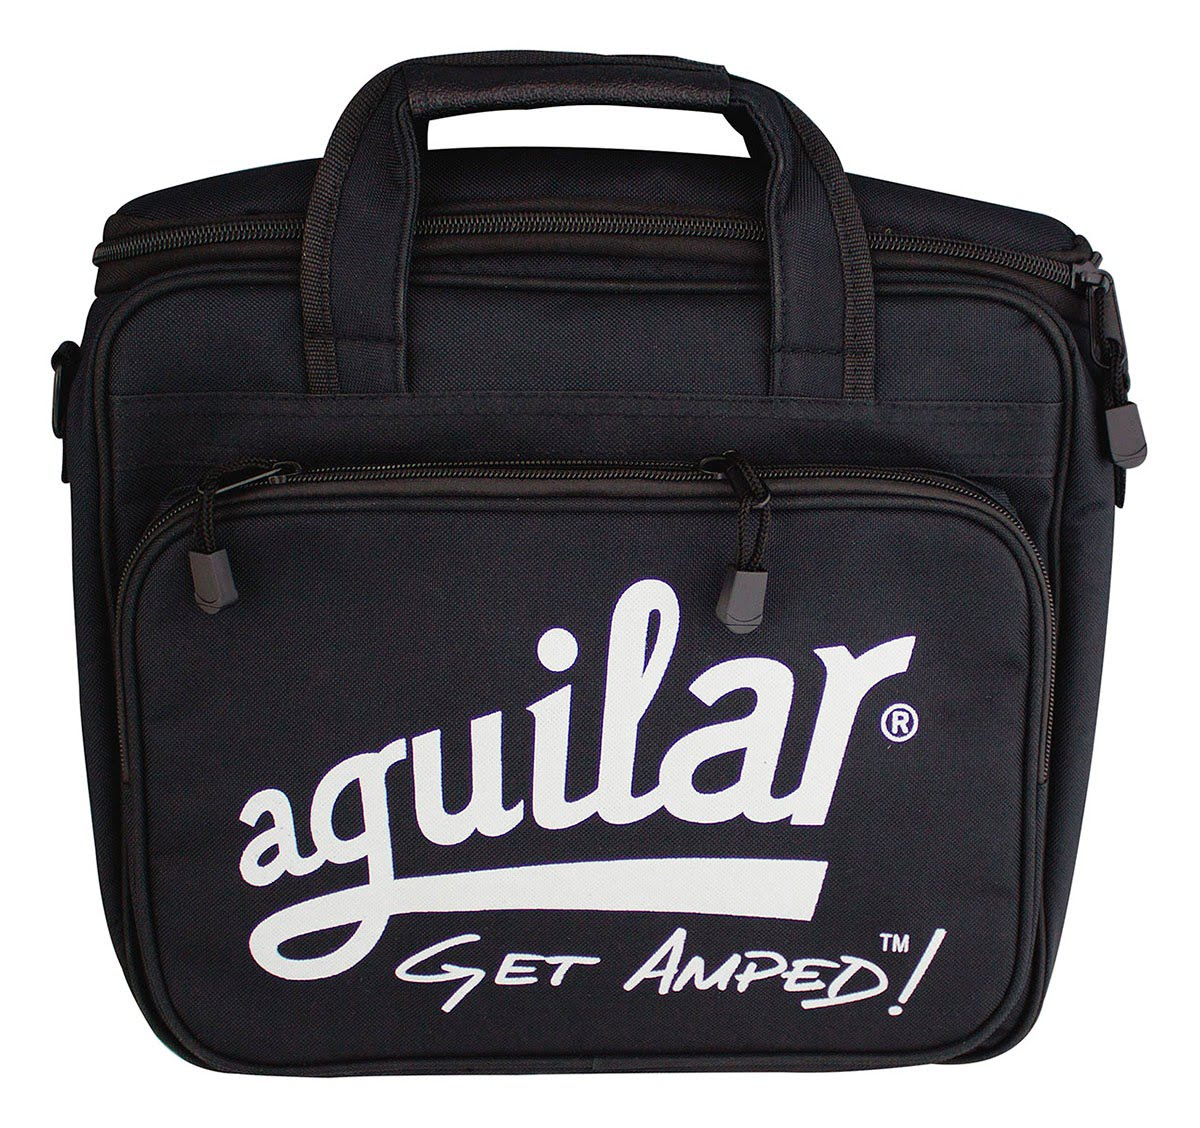 Aguilar Tonehammer 500 Carry Bag